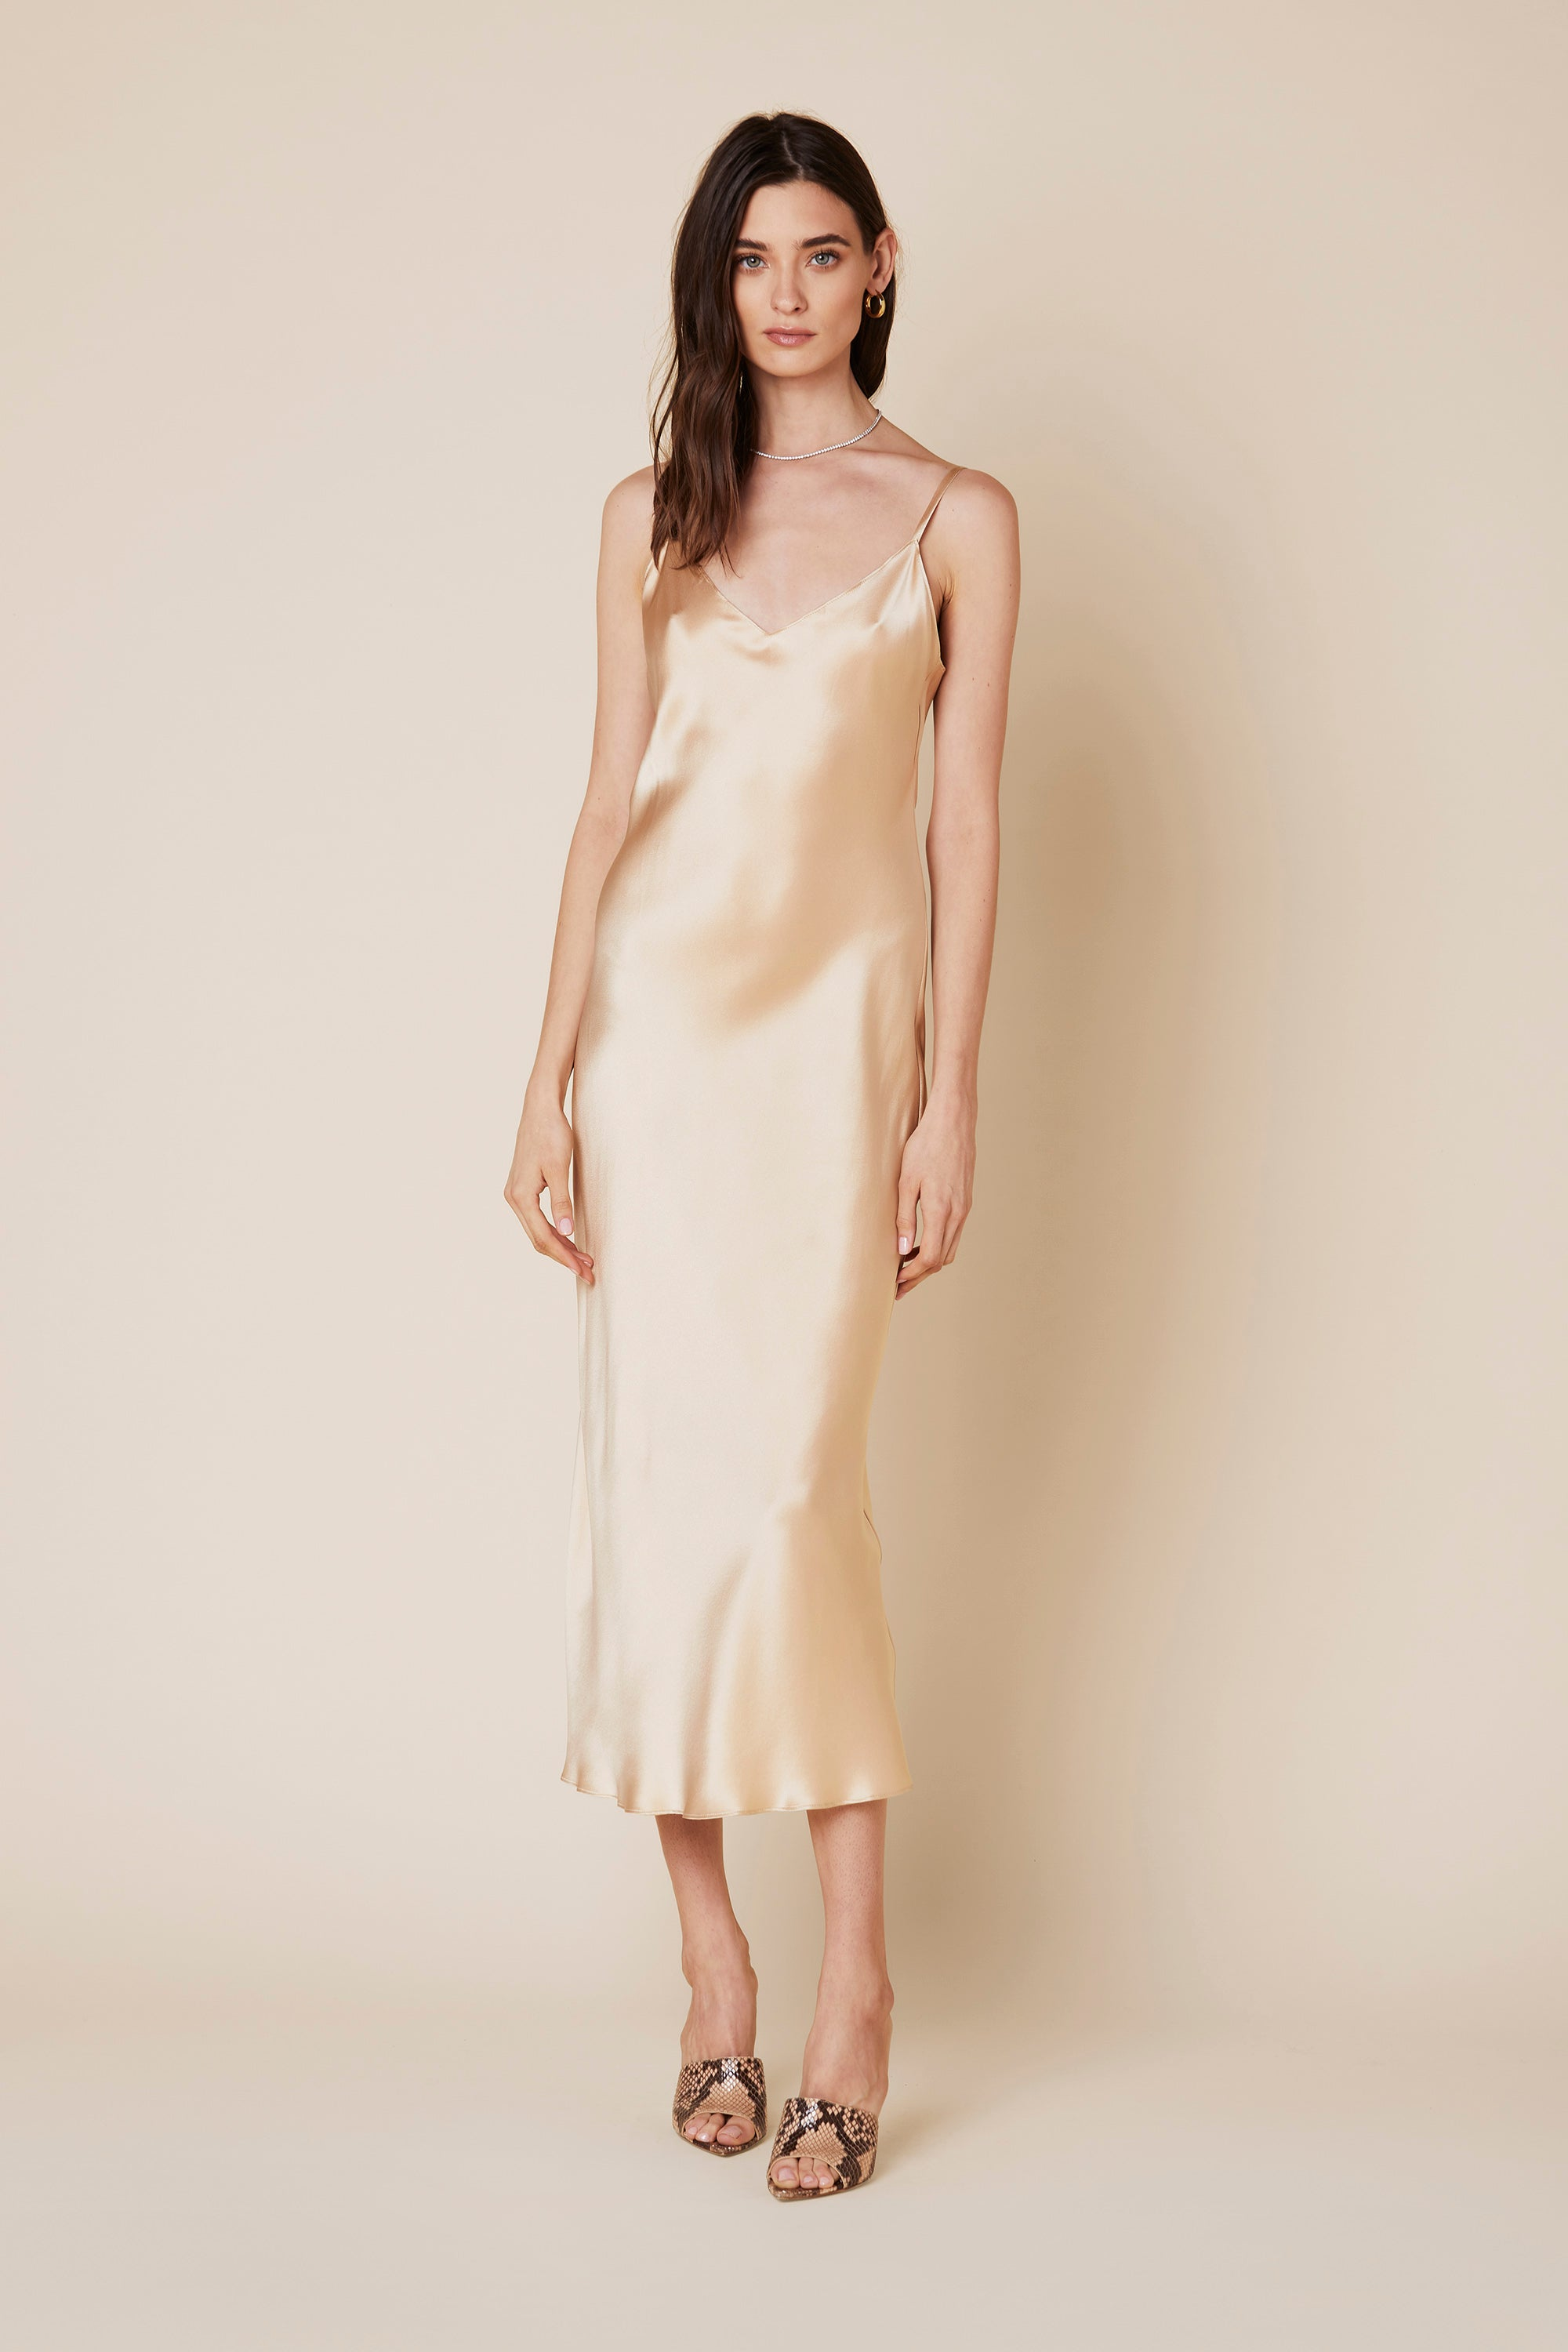 TAYLOR SILK DRESS | FAWN - Final Sale